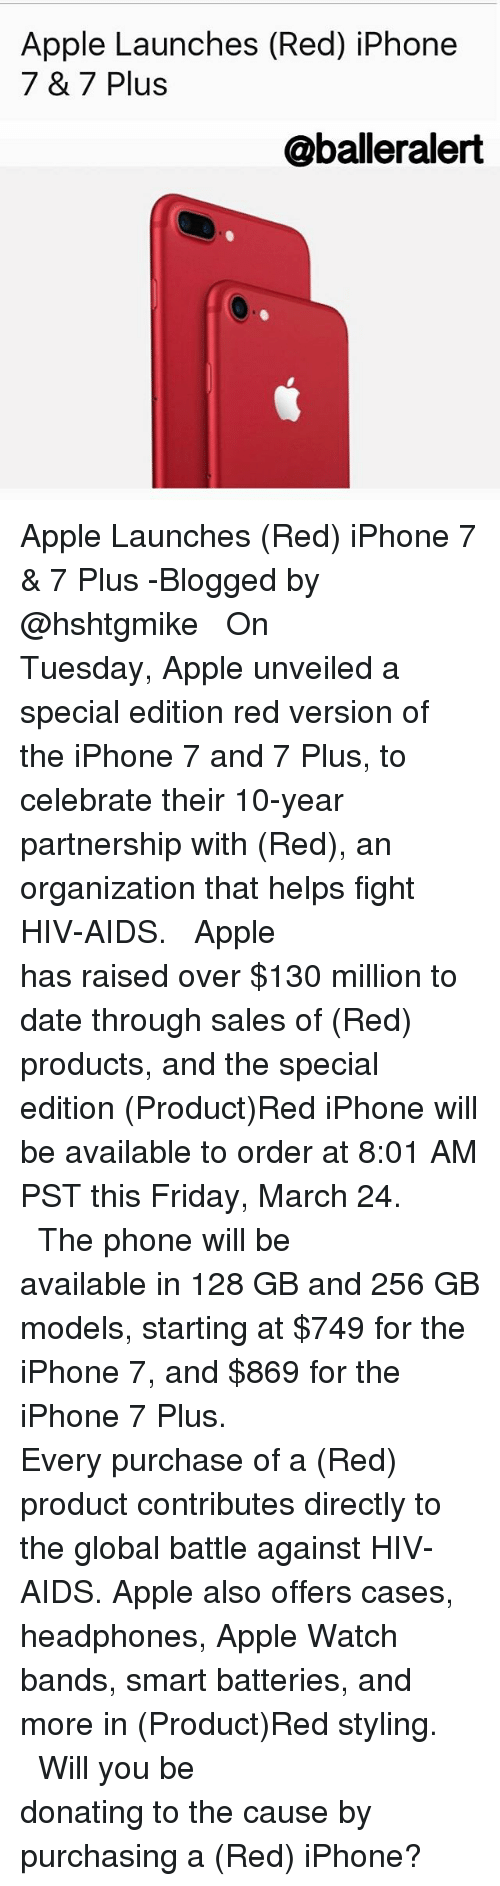 Memes, 🤖, and Hiv: Apple Launches (Red) iPhone  7 & 7 Plus  @balleralert Apple Launches (Red) iPhone 7 & 7 Plus -Blogged by @hshtgmike ⠀⠀⠀⠀⠀⠀⠀⠀⠀ ⠀⠀⠀⠀⠀⠀⠀⠀⠀ On Tuesday, Apple unveiled a special edition red version of the iPhone 7 and 7 Plus, to celebrate their 10-year partnership with (Red), an organization that helps fight HIV-AIDS. ⠀⠀⠀⠀⠀⠀⠀⠀⠀ ⠀⠀⠀⠀⠀⠀⠀⠀⠀ Apple has raised over $130 million to date through sales of (Red) products, and the special edition (Product)Red iPhone will be available to order at 8:01 AM PST this Friday, March 24. ⠀⠀⠀⠀⠀⠀⠀⠀⠀ ⠀⠀⠀⠀⠀⠀⠀⠀⠀ The phone will be available in 128 GB and 256 GB models, starting at $749 for the iPhone 7, and $869 for the iPhone 7 Plus. ⠀⠀⠀⠀⠀⠀⠀⠀⠀ ⠀⠀⠀⠀⠀⠀⠀⠀⠀ Every purchase of a (Red) product contributes directly to the global battle against HIV-AIDS. Apple also offers cases, headphones, Apple Watch bands, smart batteries, and more in (Product)Red styling. ⠀⠀⠀⠀⠀⠀⠀⠀⠀ ⠀⠀⠀⠀⠀⠀⠀⠀⠀ Will you be donating to the cause by purchasing a (Red) iPhone?